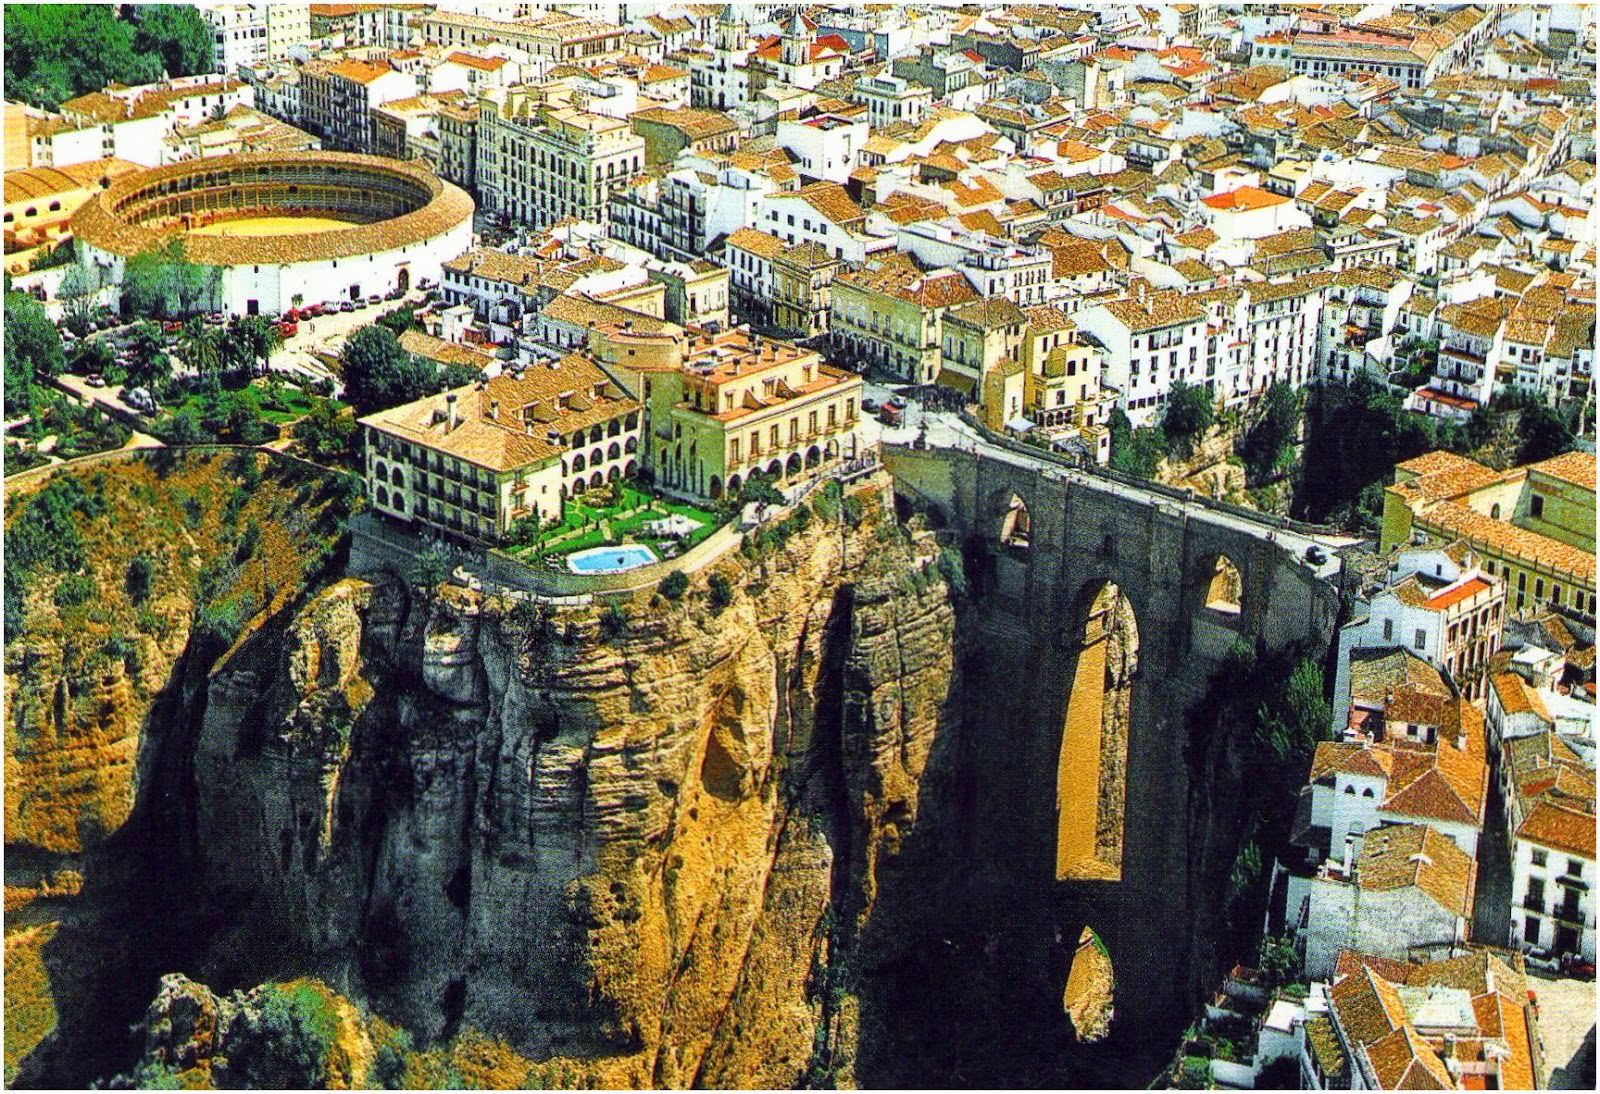 Ronda Spain  city photo : FOTO AÉREA DE RONDA Foto www.mundologia.es